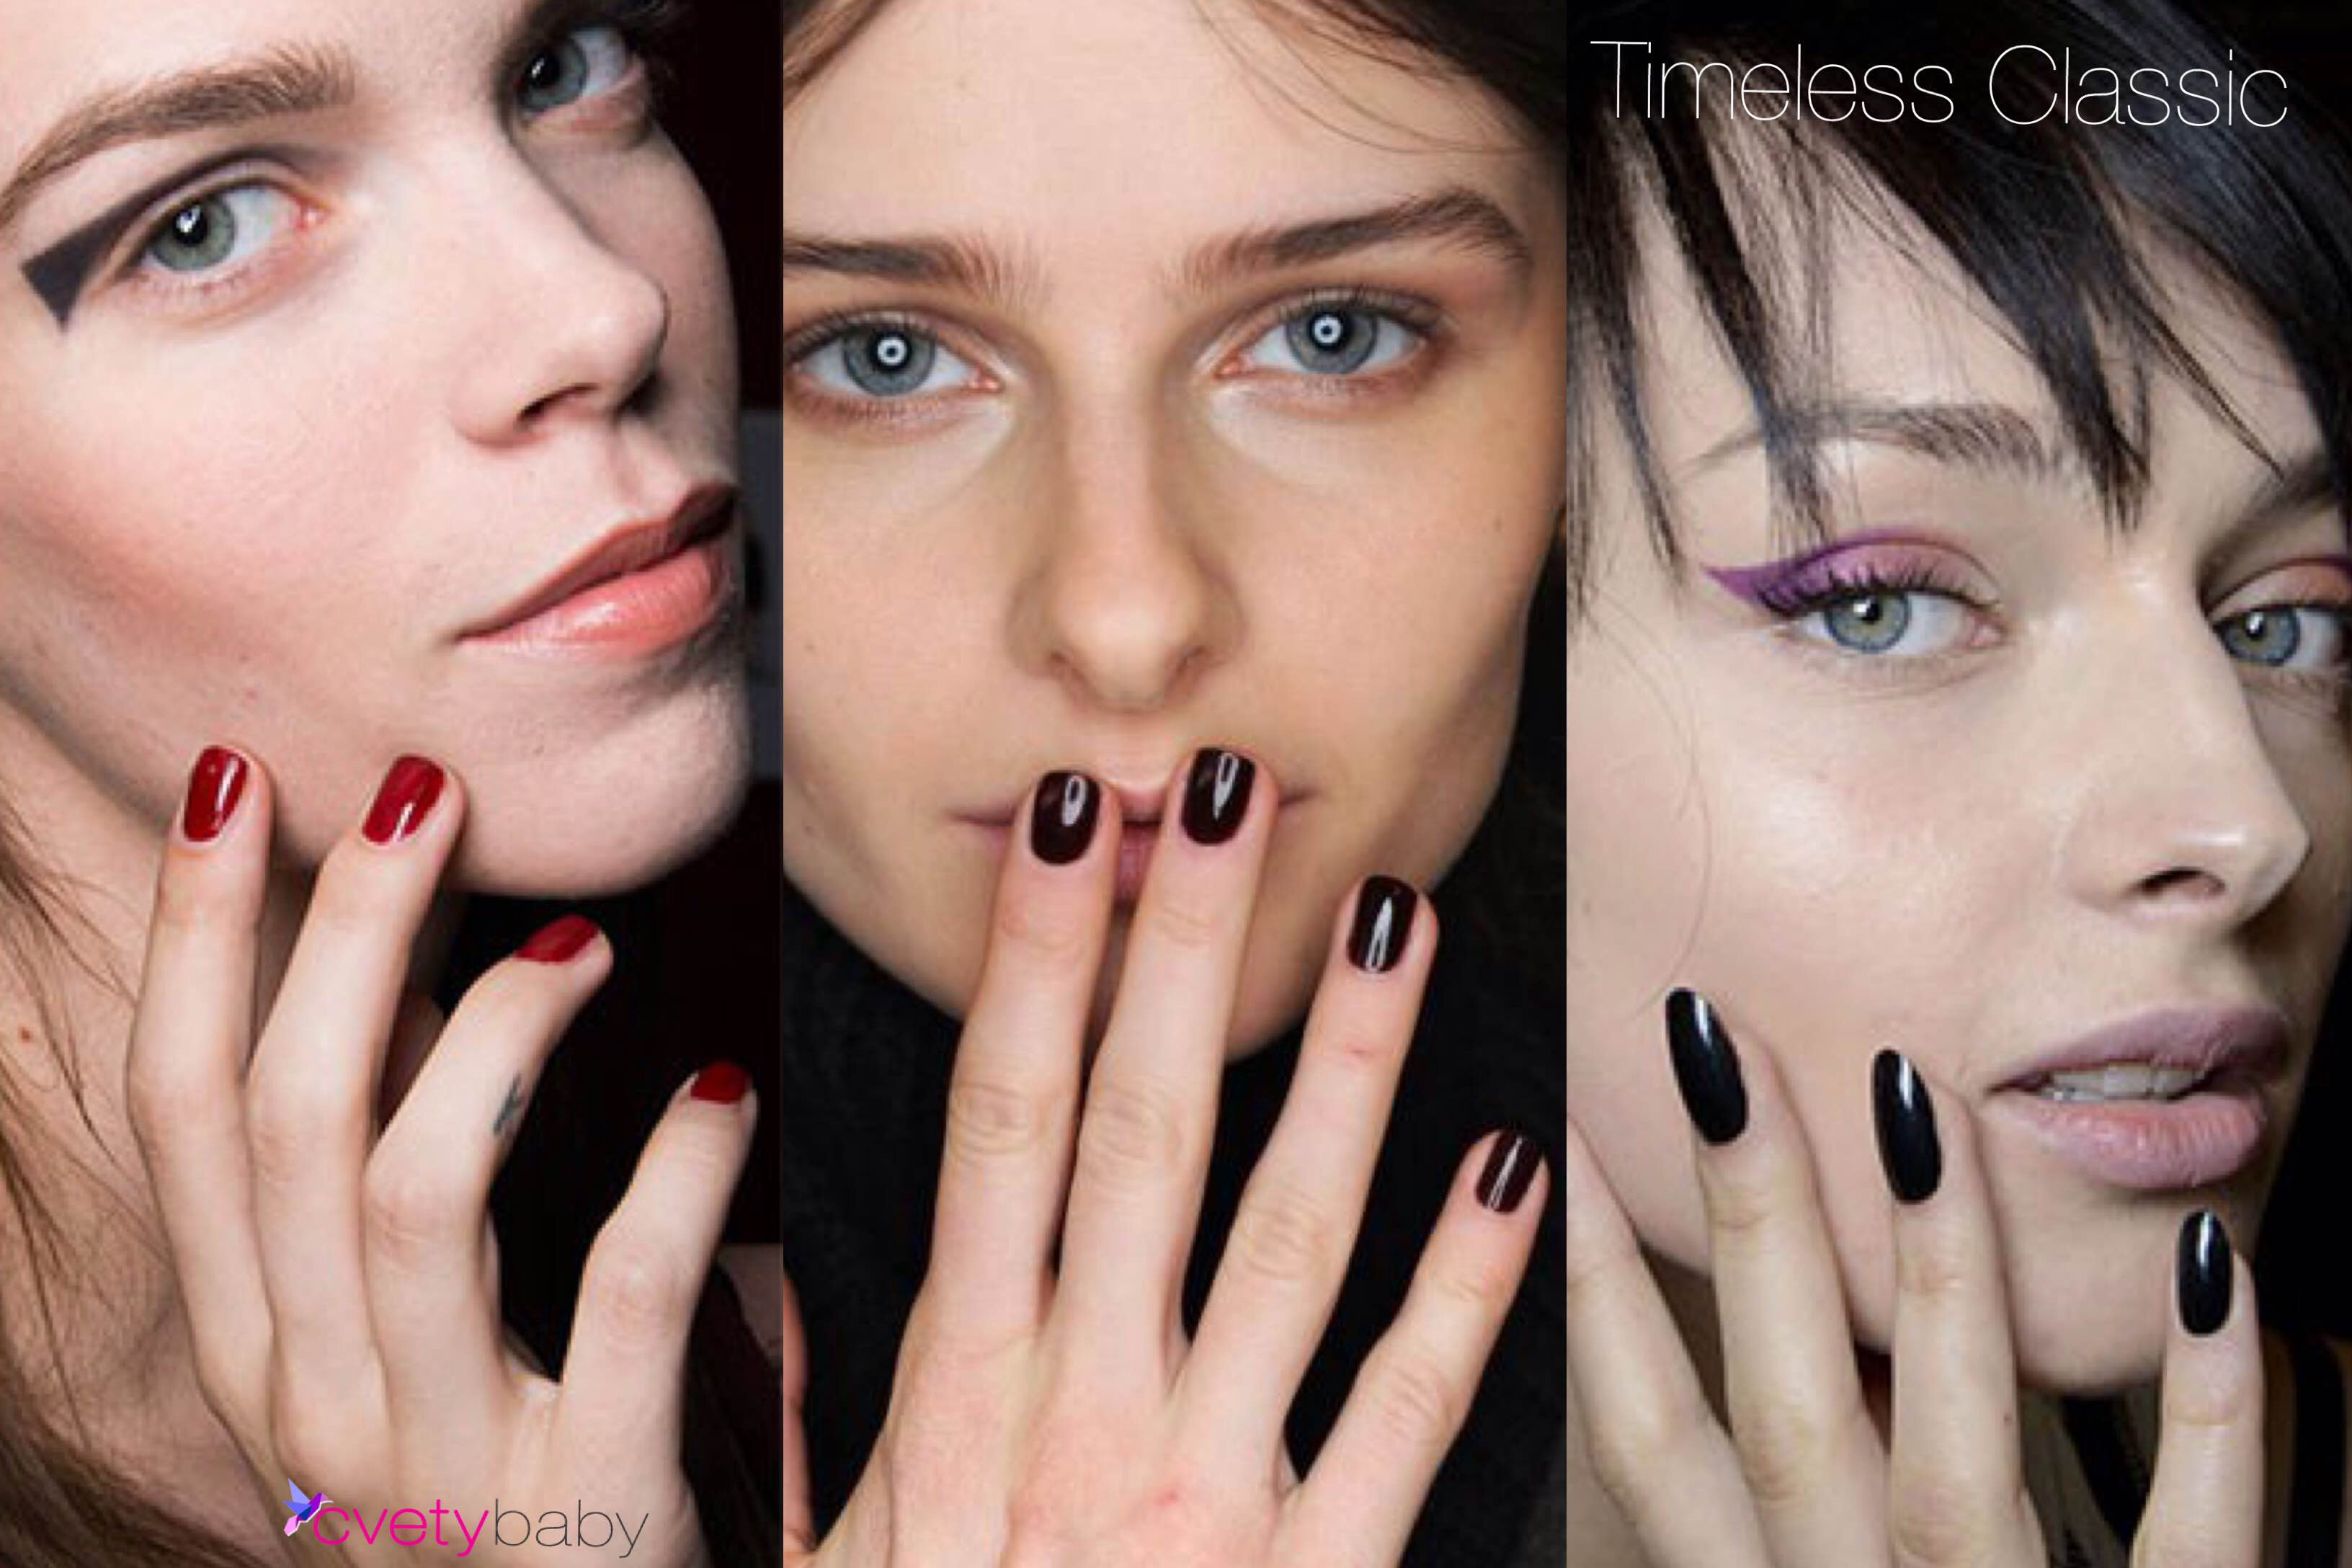 Nail polish trends 2016 timeless classic manicure